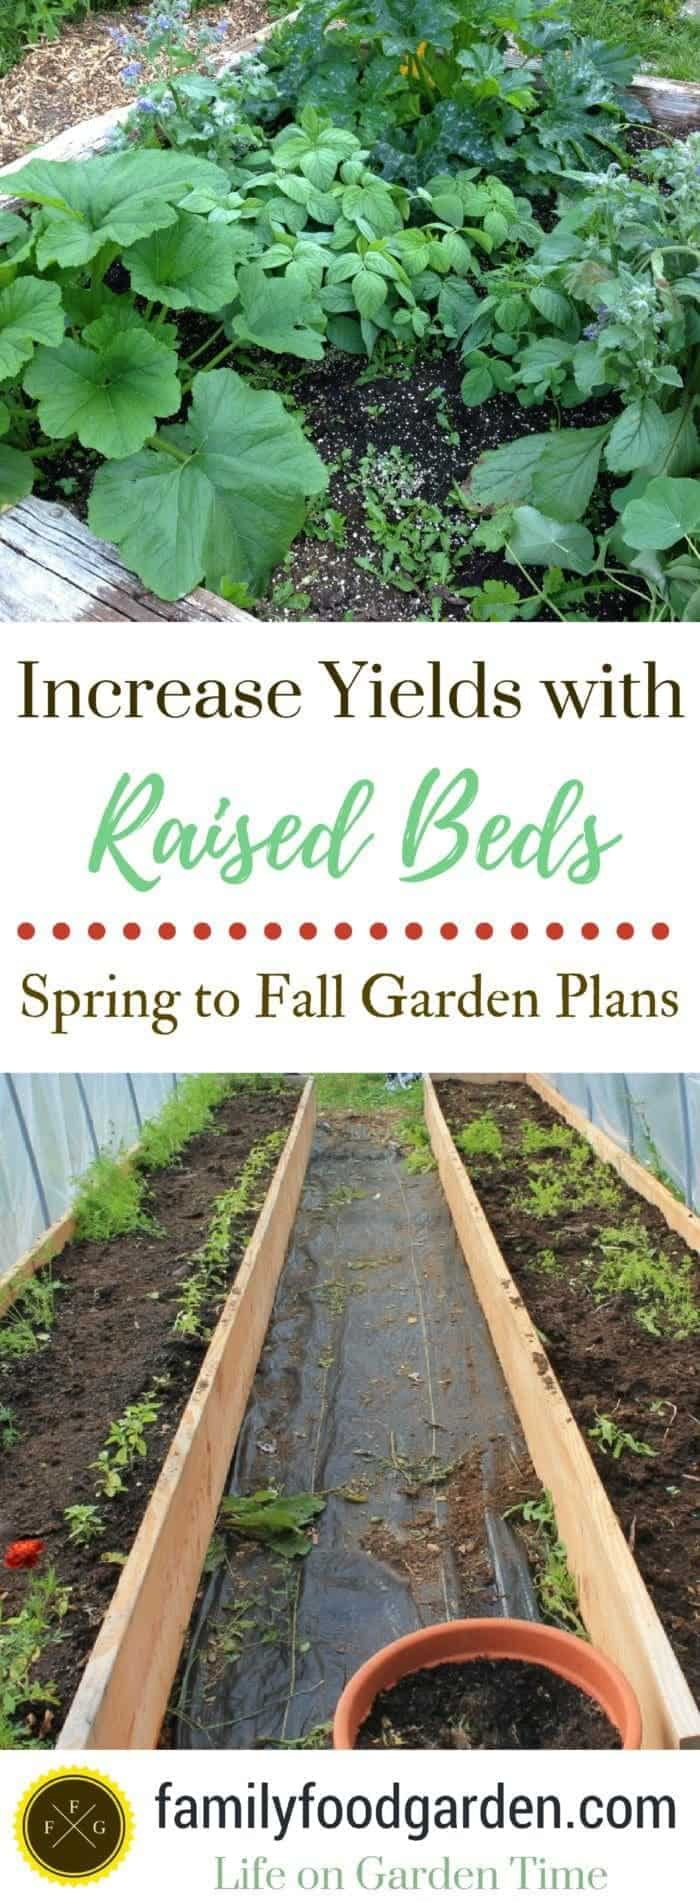 Increase yields with raised beds